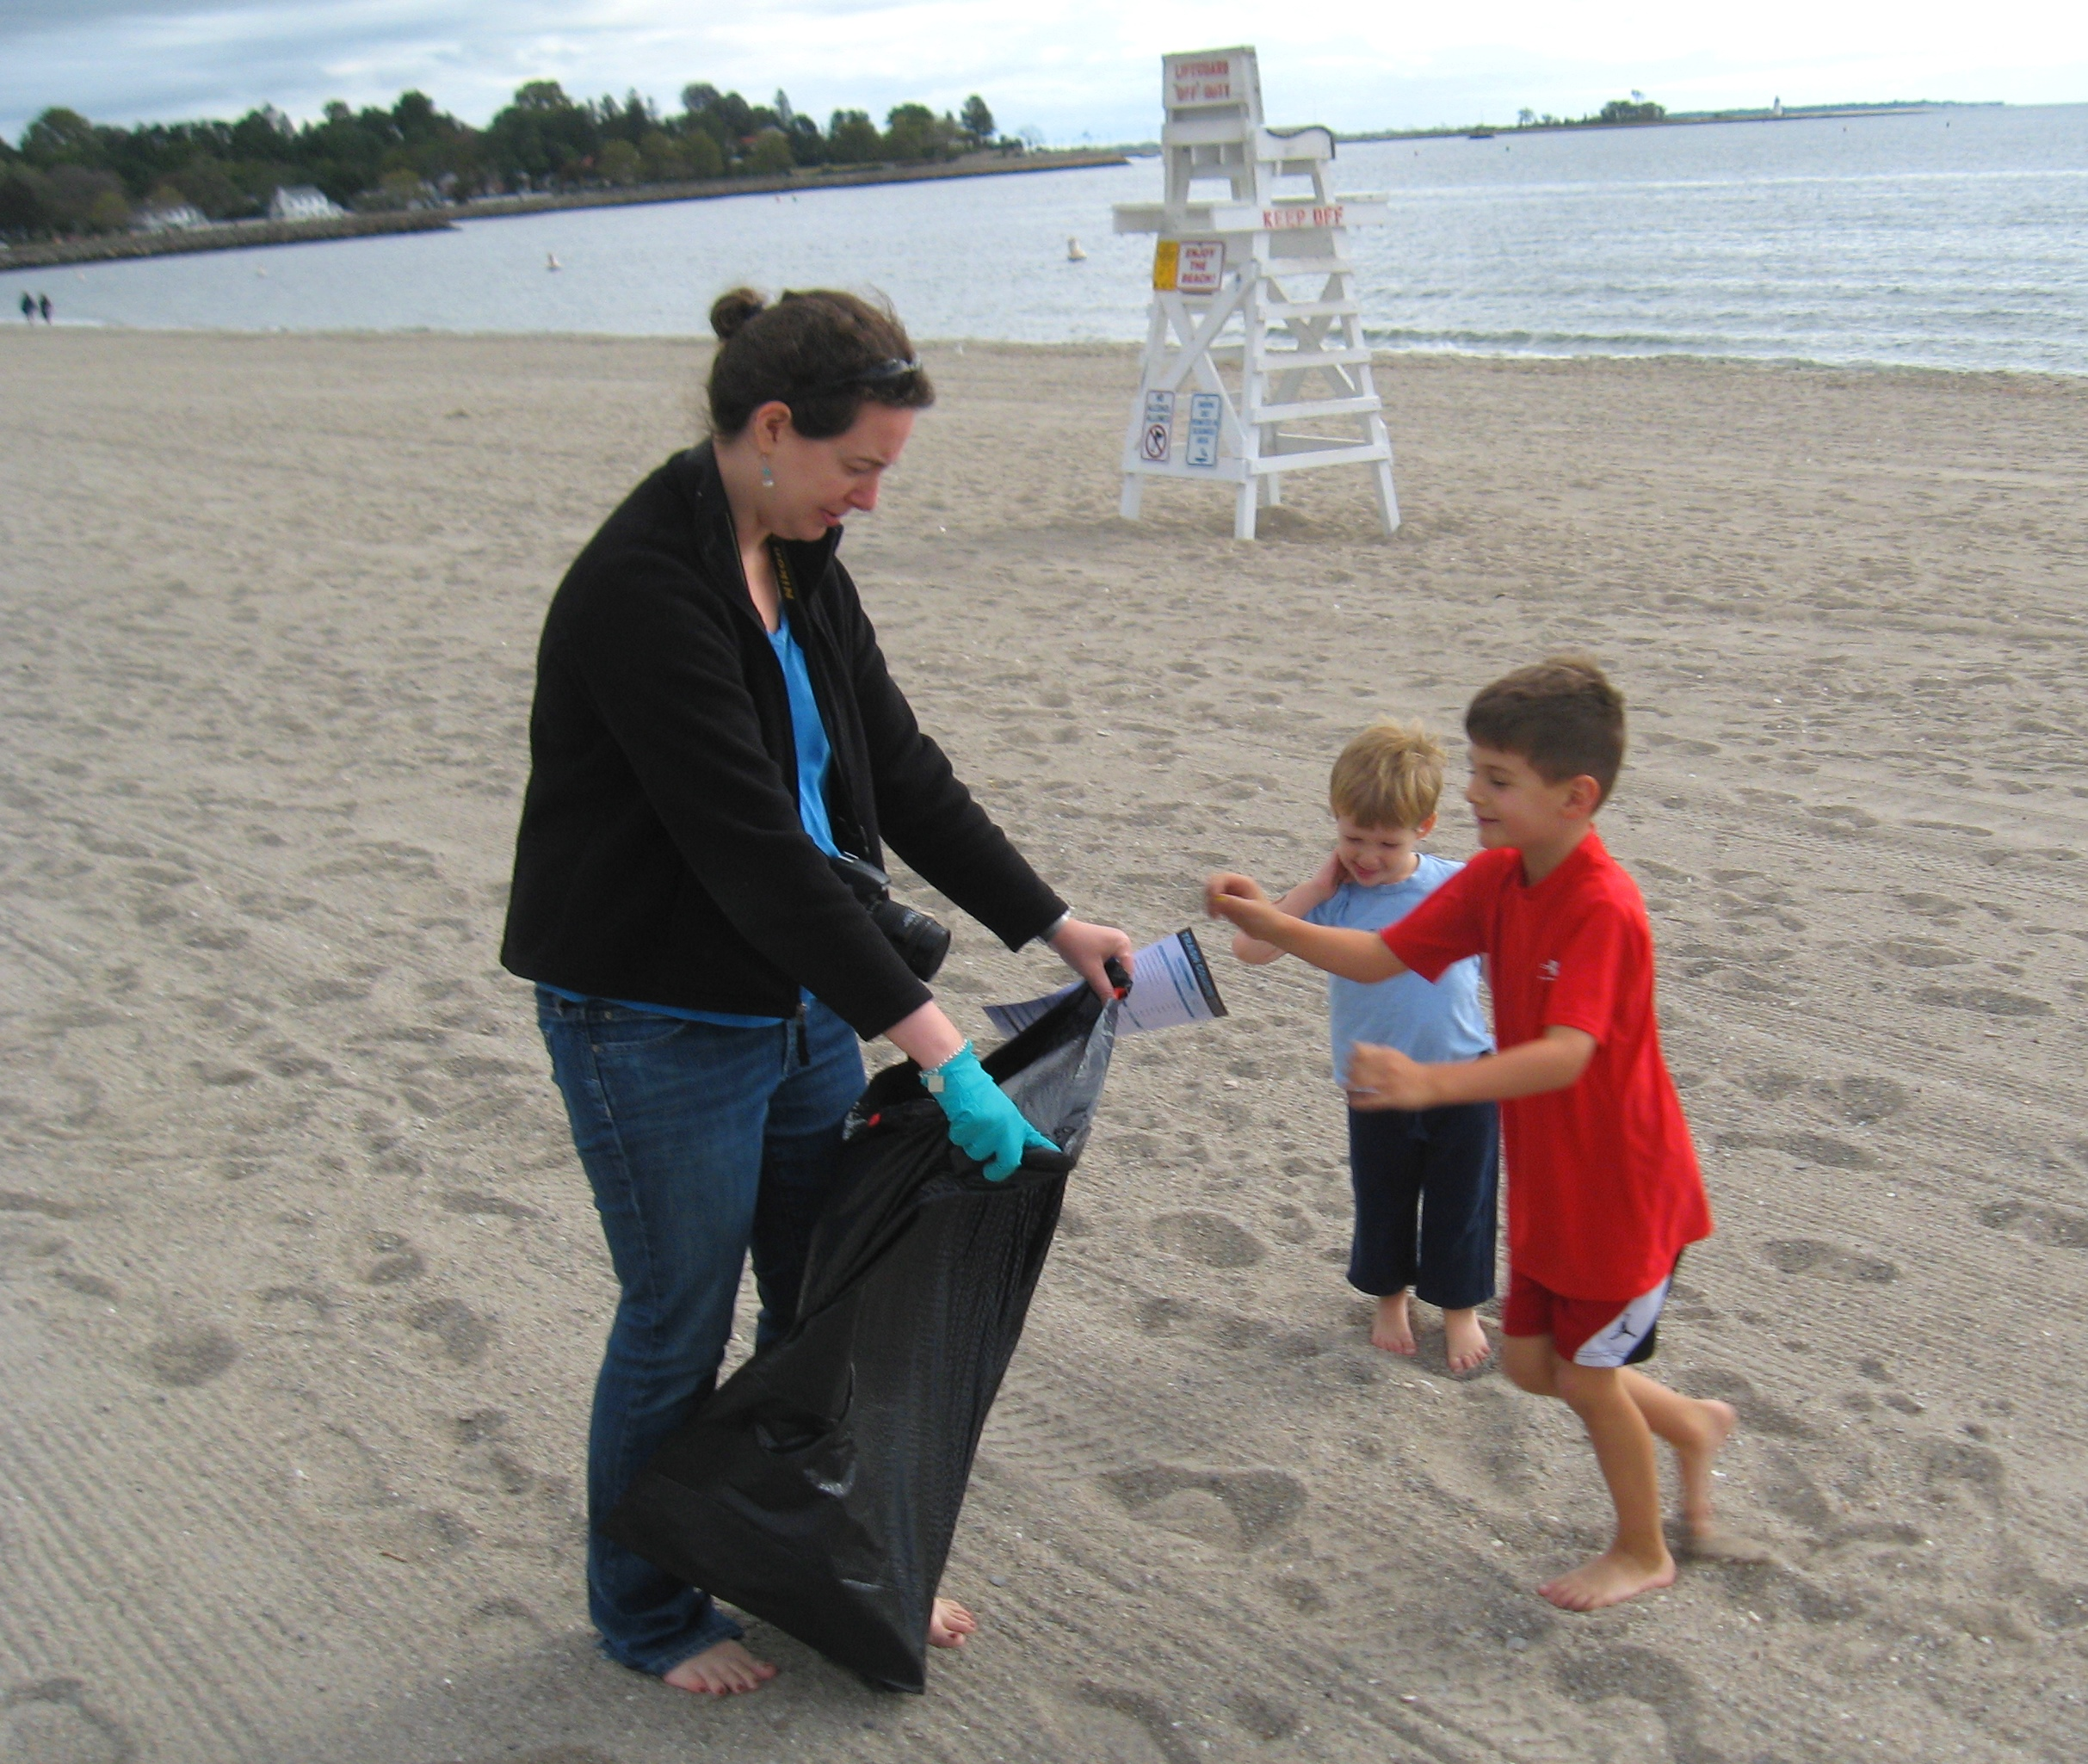 Cleanup at Jennings Beach, Fairfield